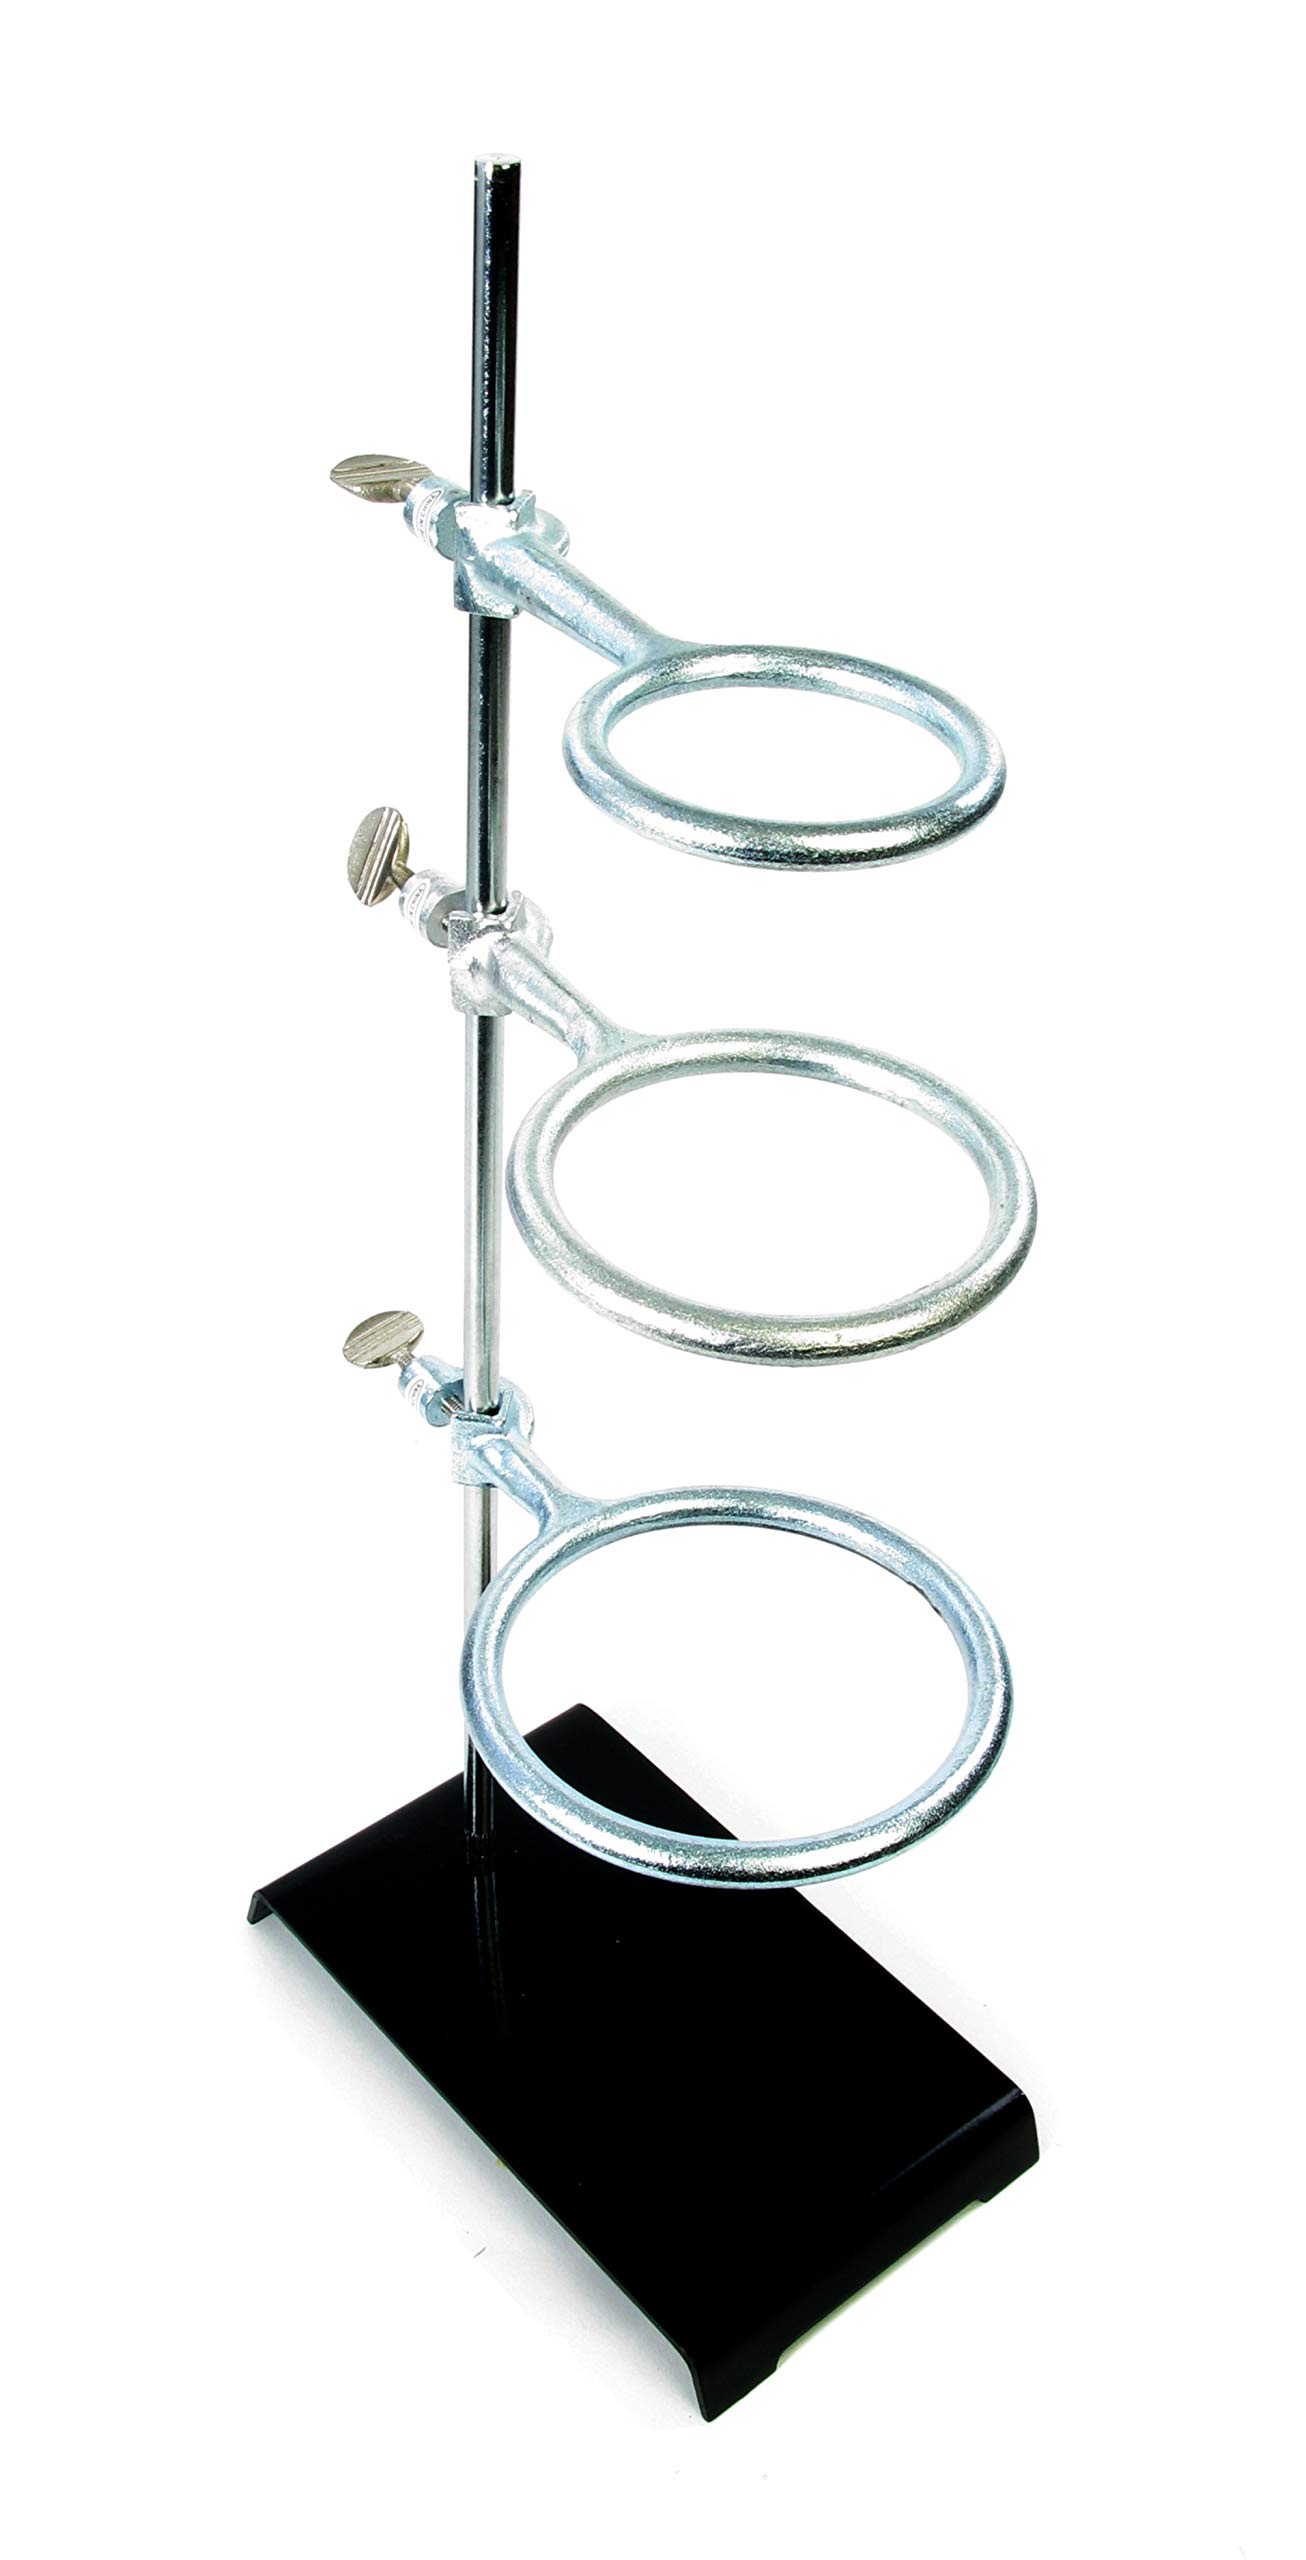 American Educational Stamped Steel Support Ring Stand with 3 Rings, 8'' Length x 5'' Width Base Size by American Educational Products